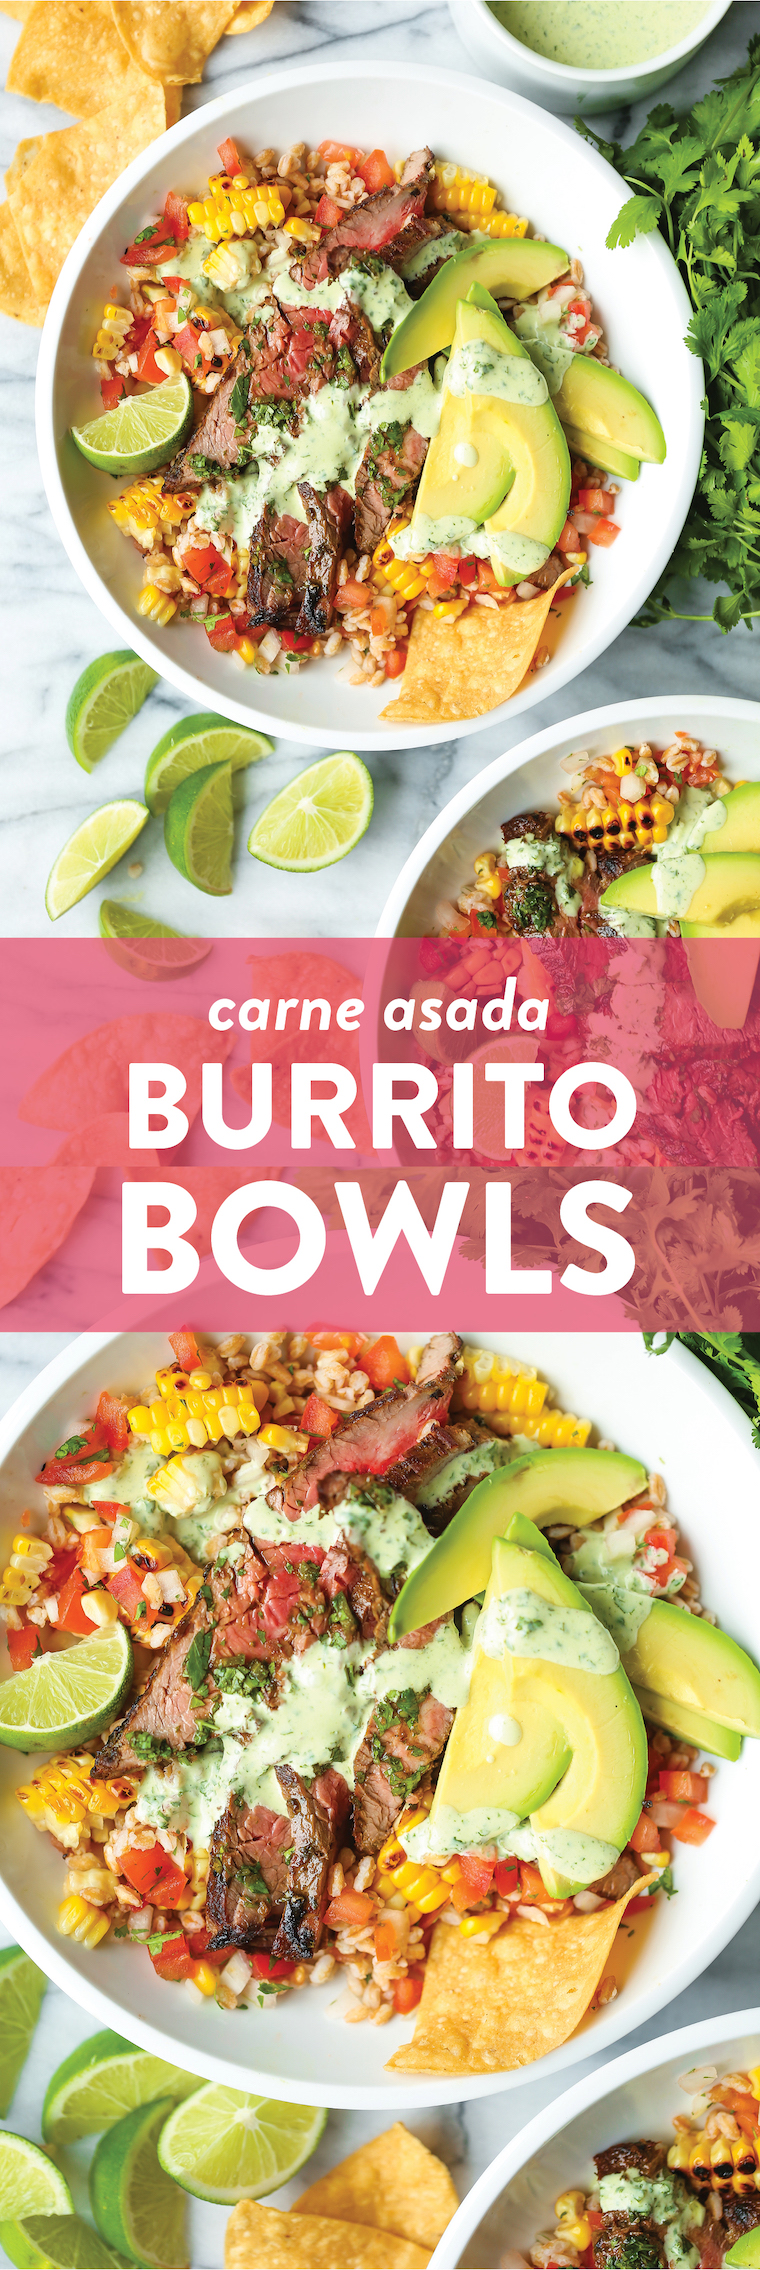 Carne Asada Burrito Bowls - Pico, corn, avocado, cilantro, lime wedges and the best carne asada EVER. Drizzled with cilantro lime vinaigrette. SO SO BOMB.